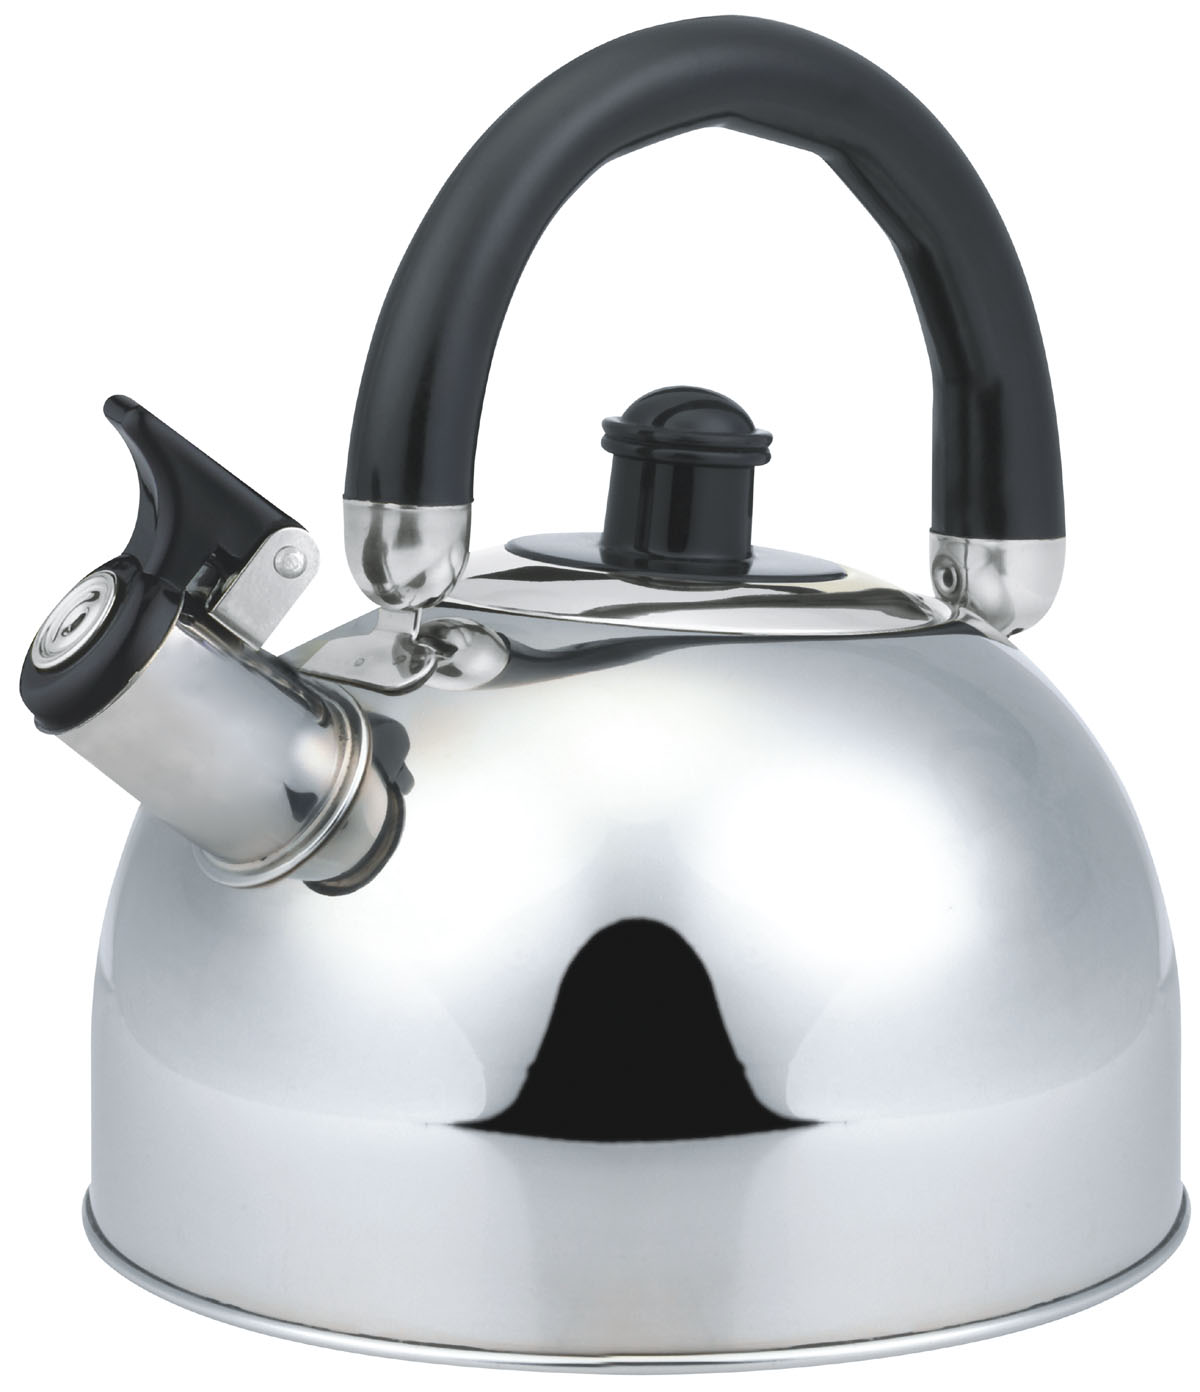 Economic move handle whistling kettle